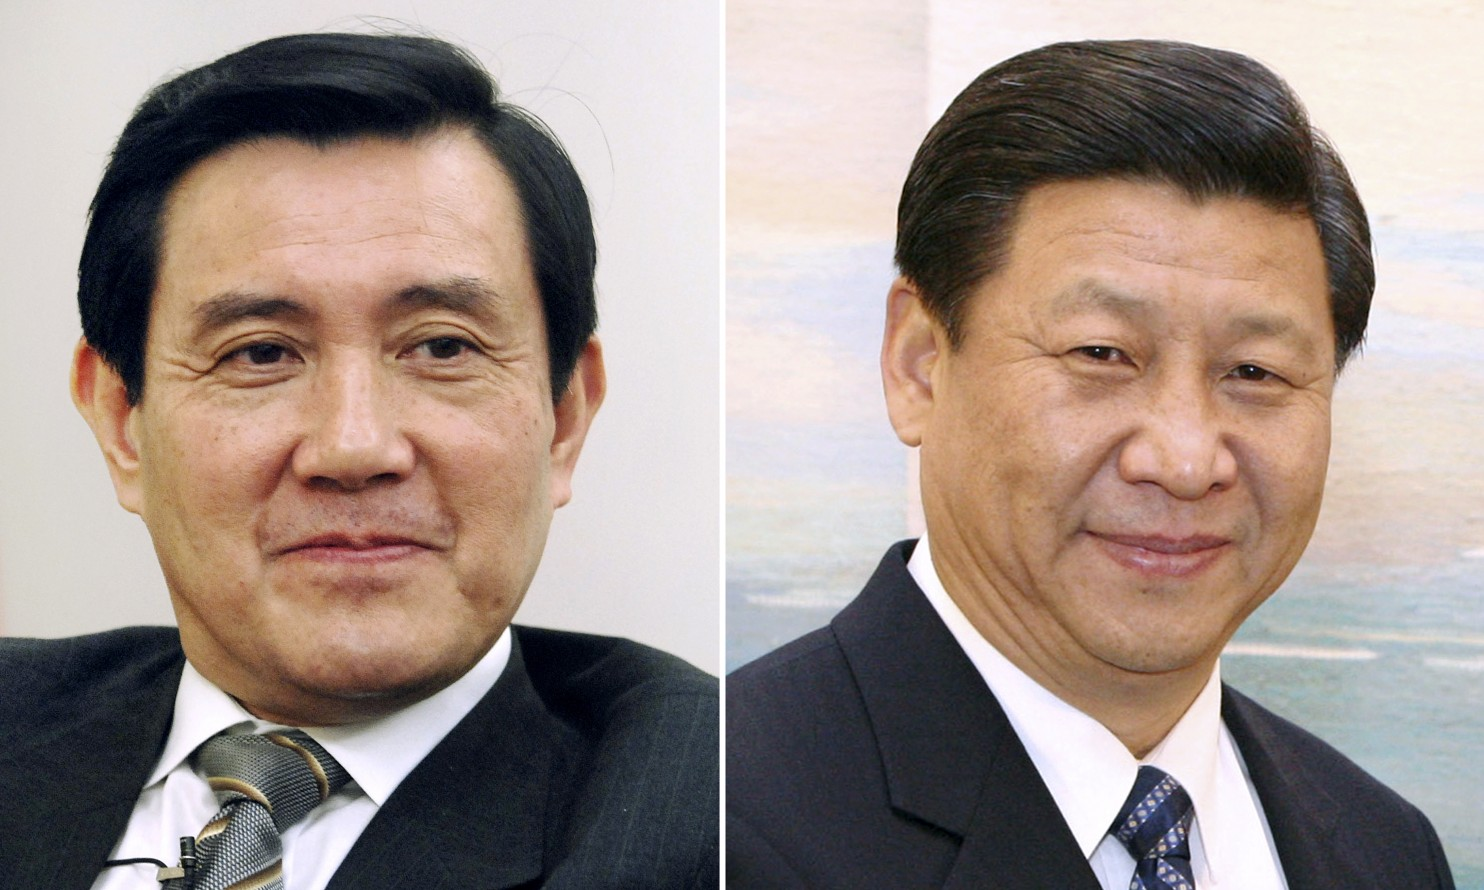 Taiwan's President Ma Ying-jeou, left, and China's President Xi Jinping